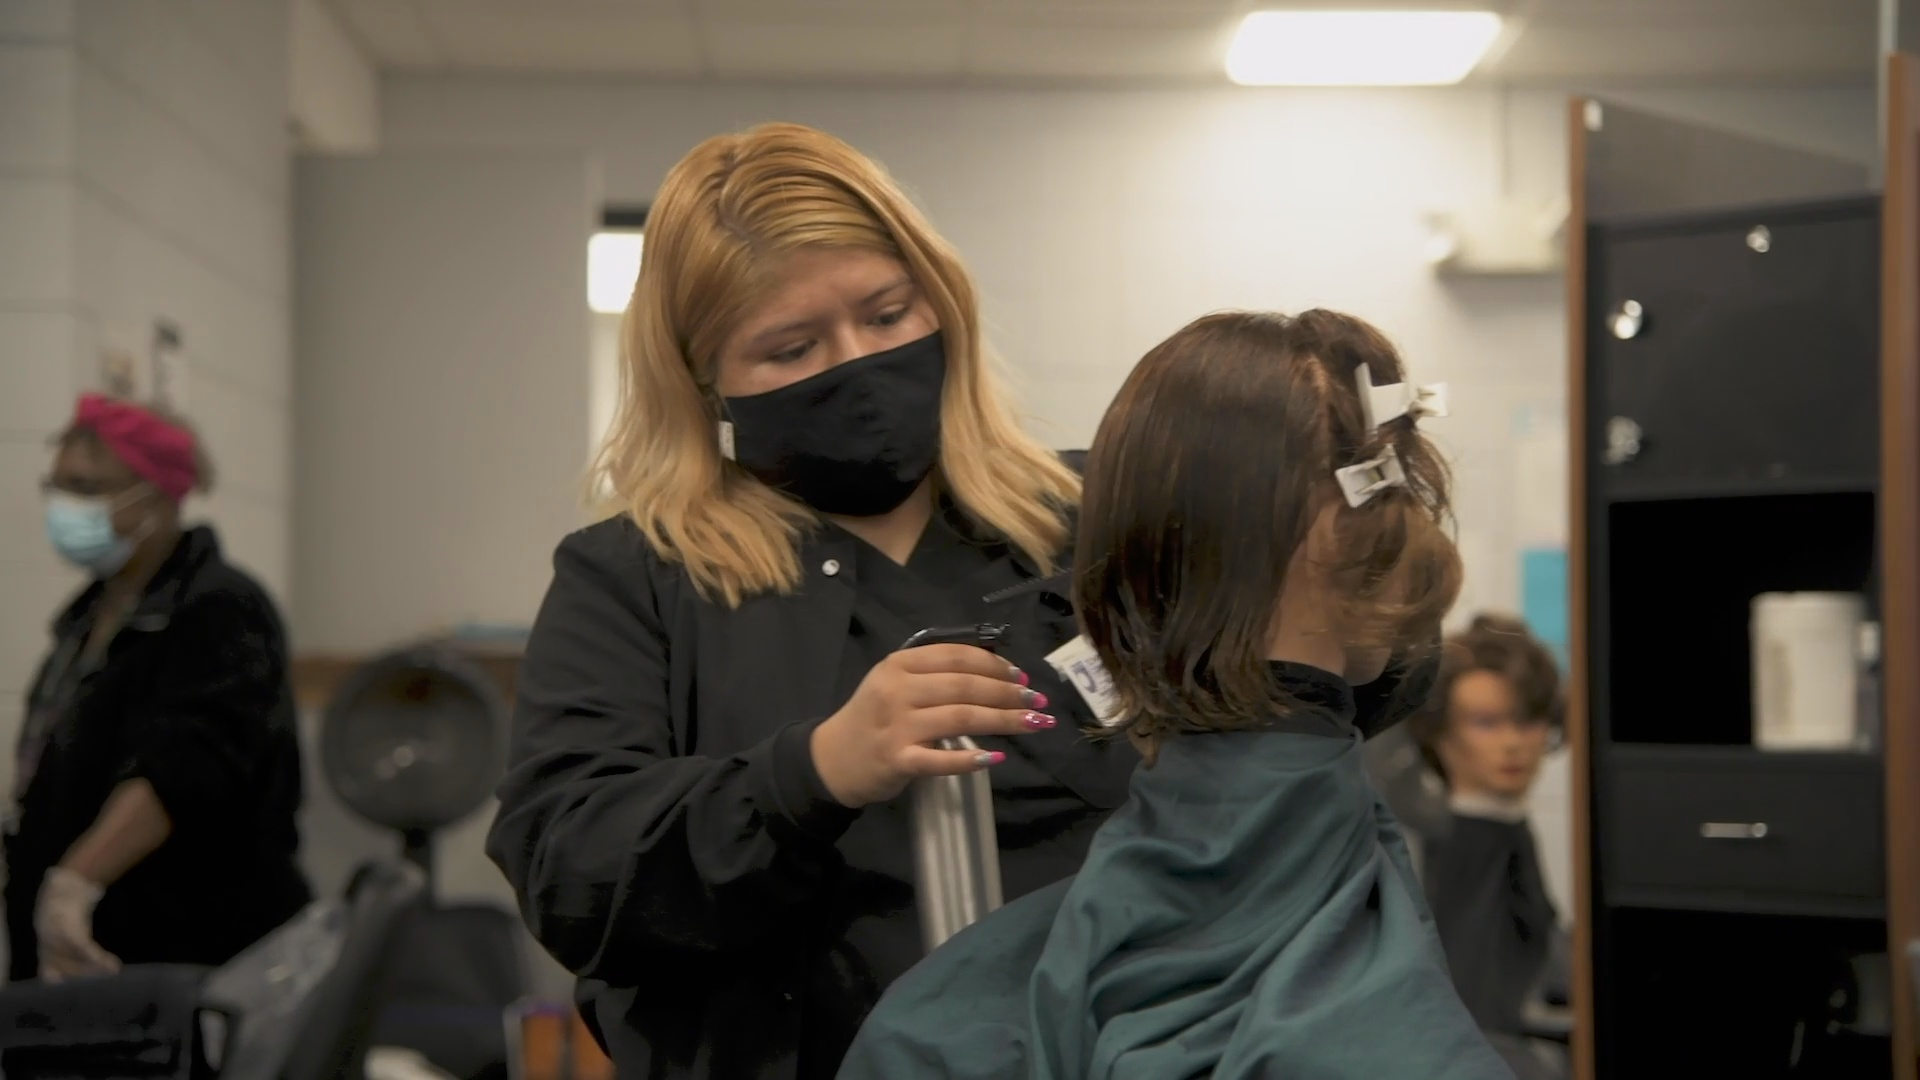 The three-semester continuing education program is designed to teach students the skills they need to work in a professional salon. The bilingual program will be taught by both English-speaking and Spanish-speaking instructors.